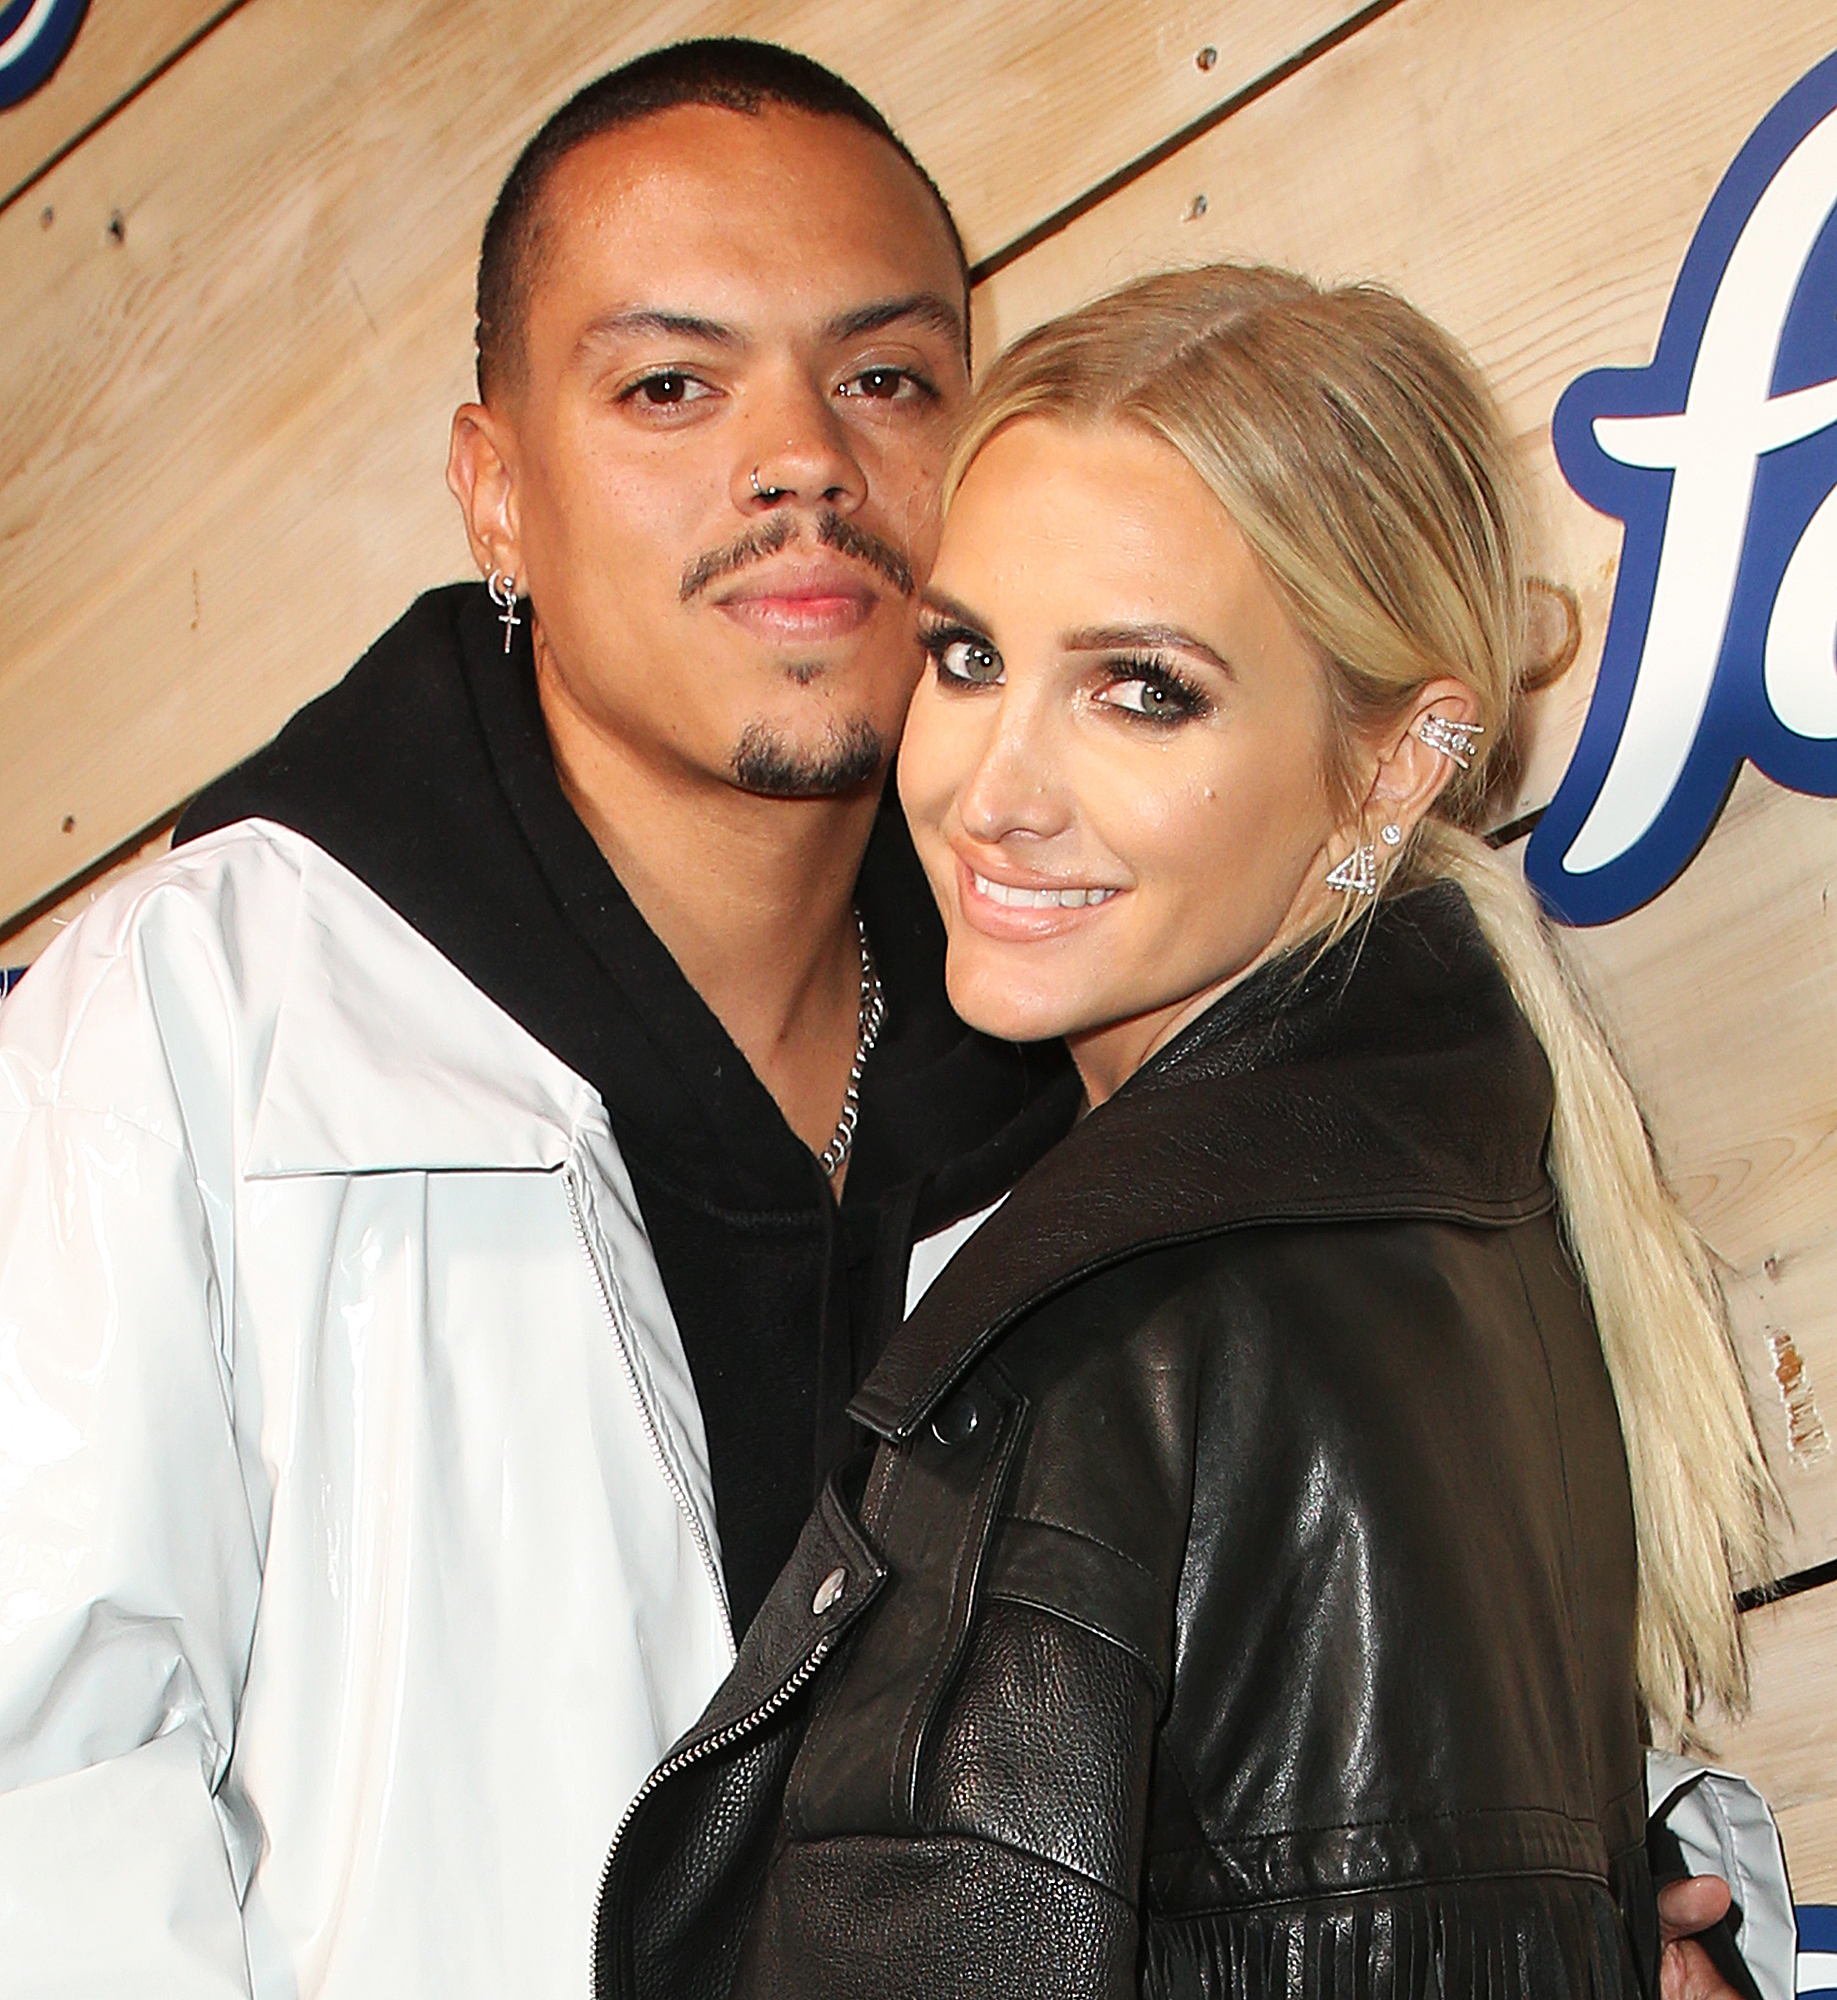 Evan-Ross-and-Ashlee-Simpson-expecting